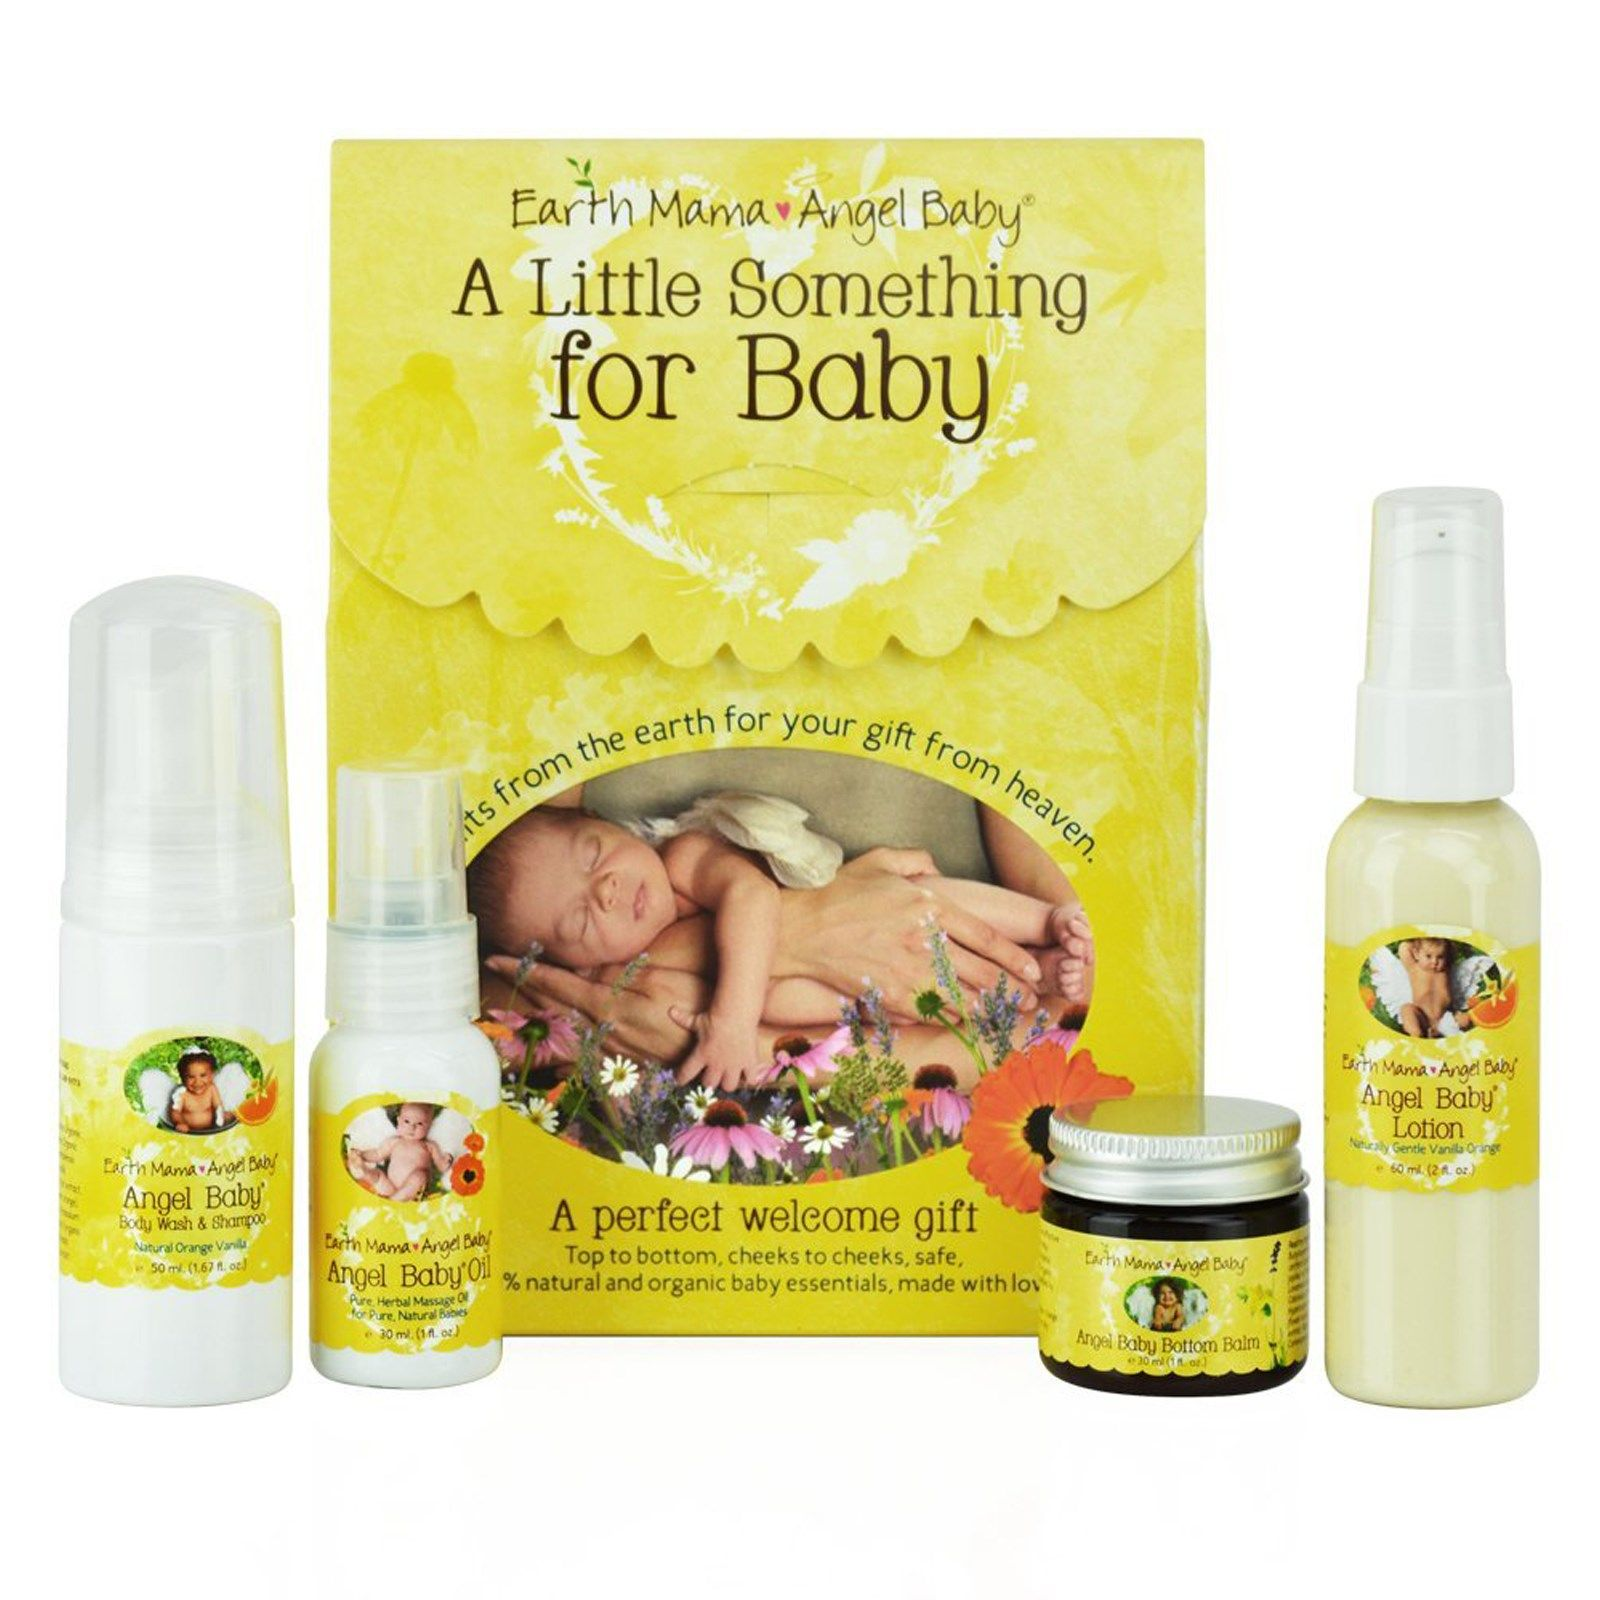 Earth Mama A Little Something For Baby 5 Piece Set Discontinued Item Earth Mama Angel Baby Baby Gift Sets Earth Mama